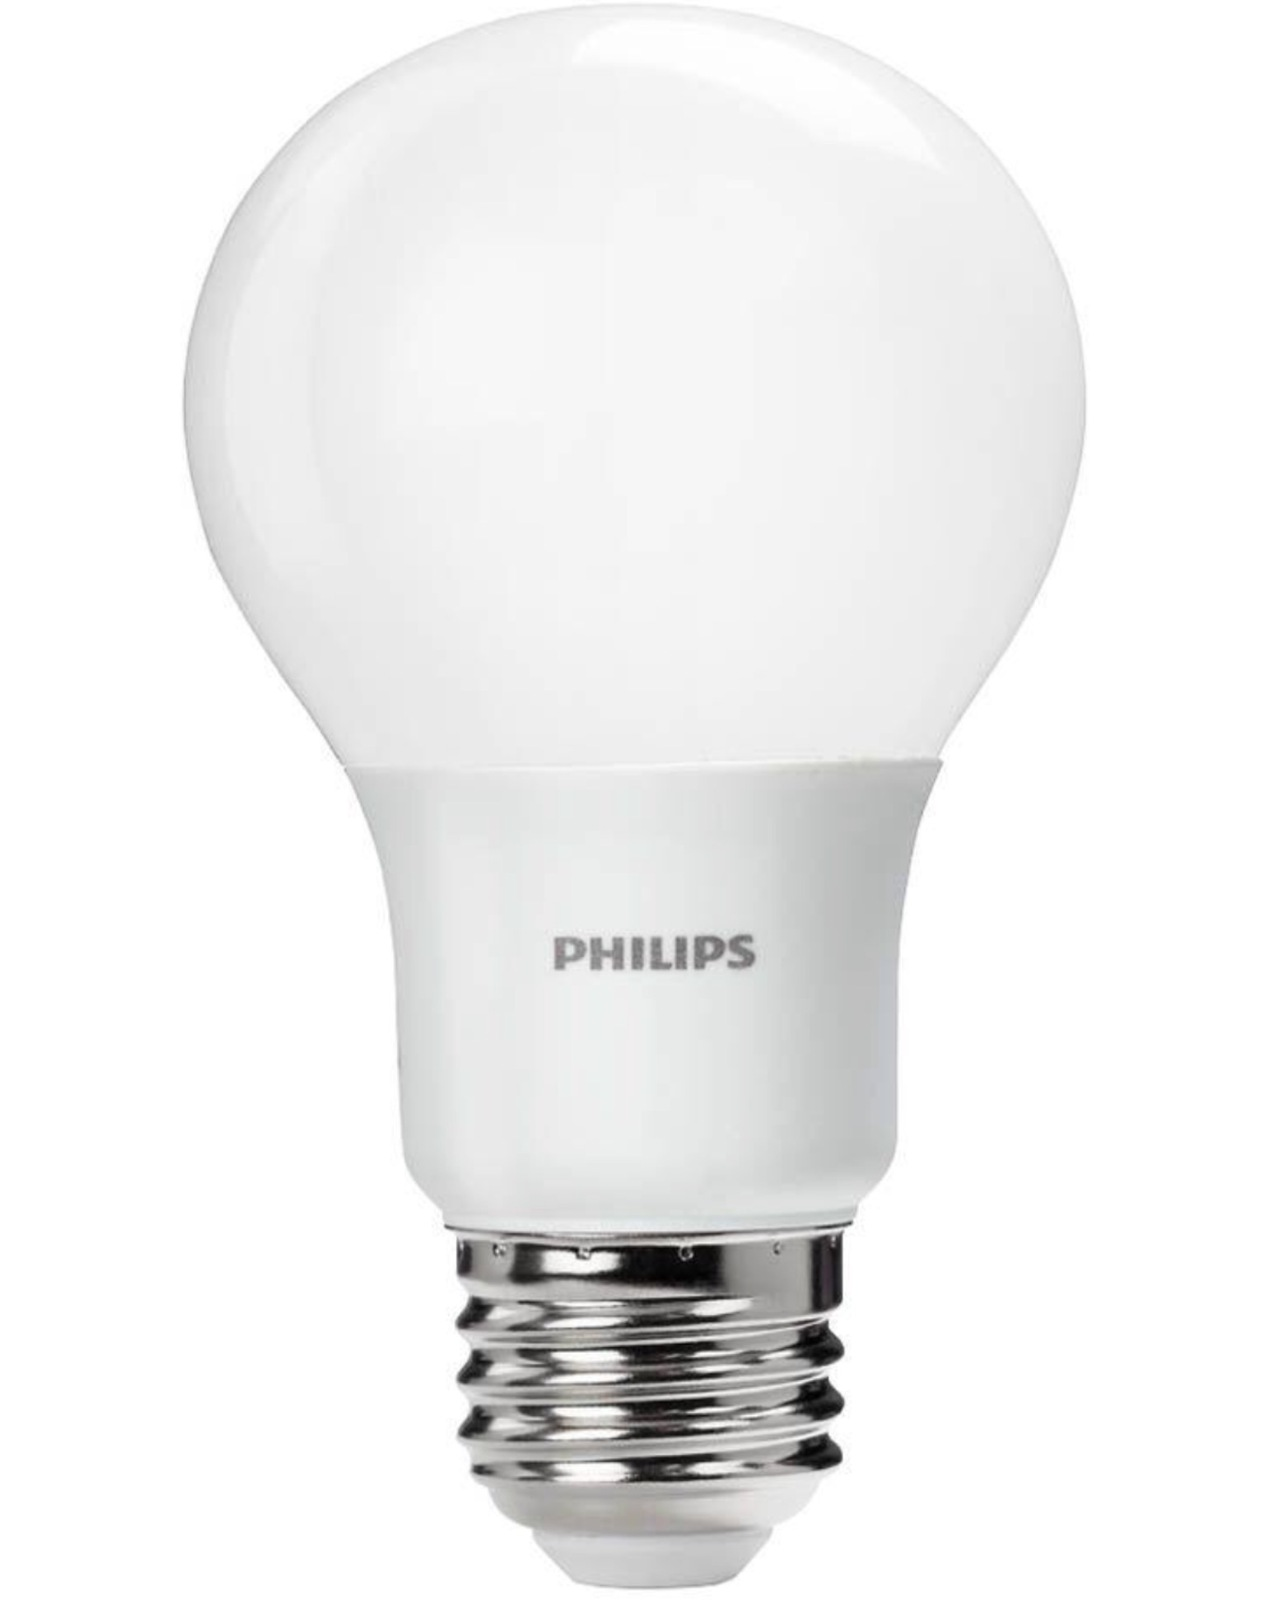 12-Bulb Pack Philips 416875 Work and Security 150-Watt T3 RSC Double Ended Base Light Bulb